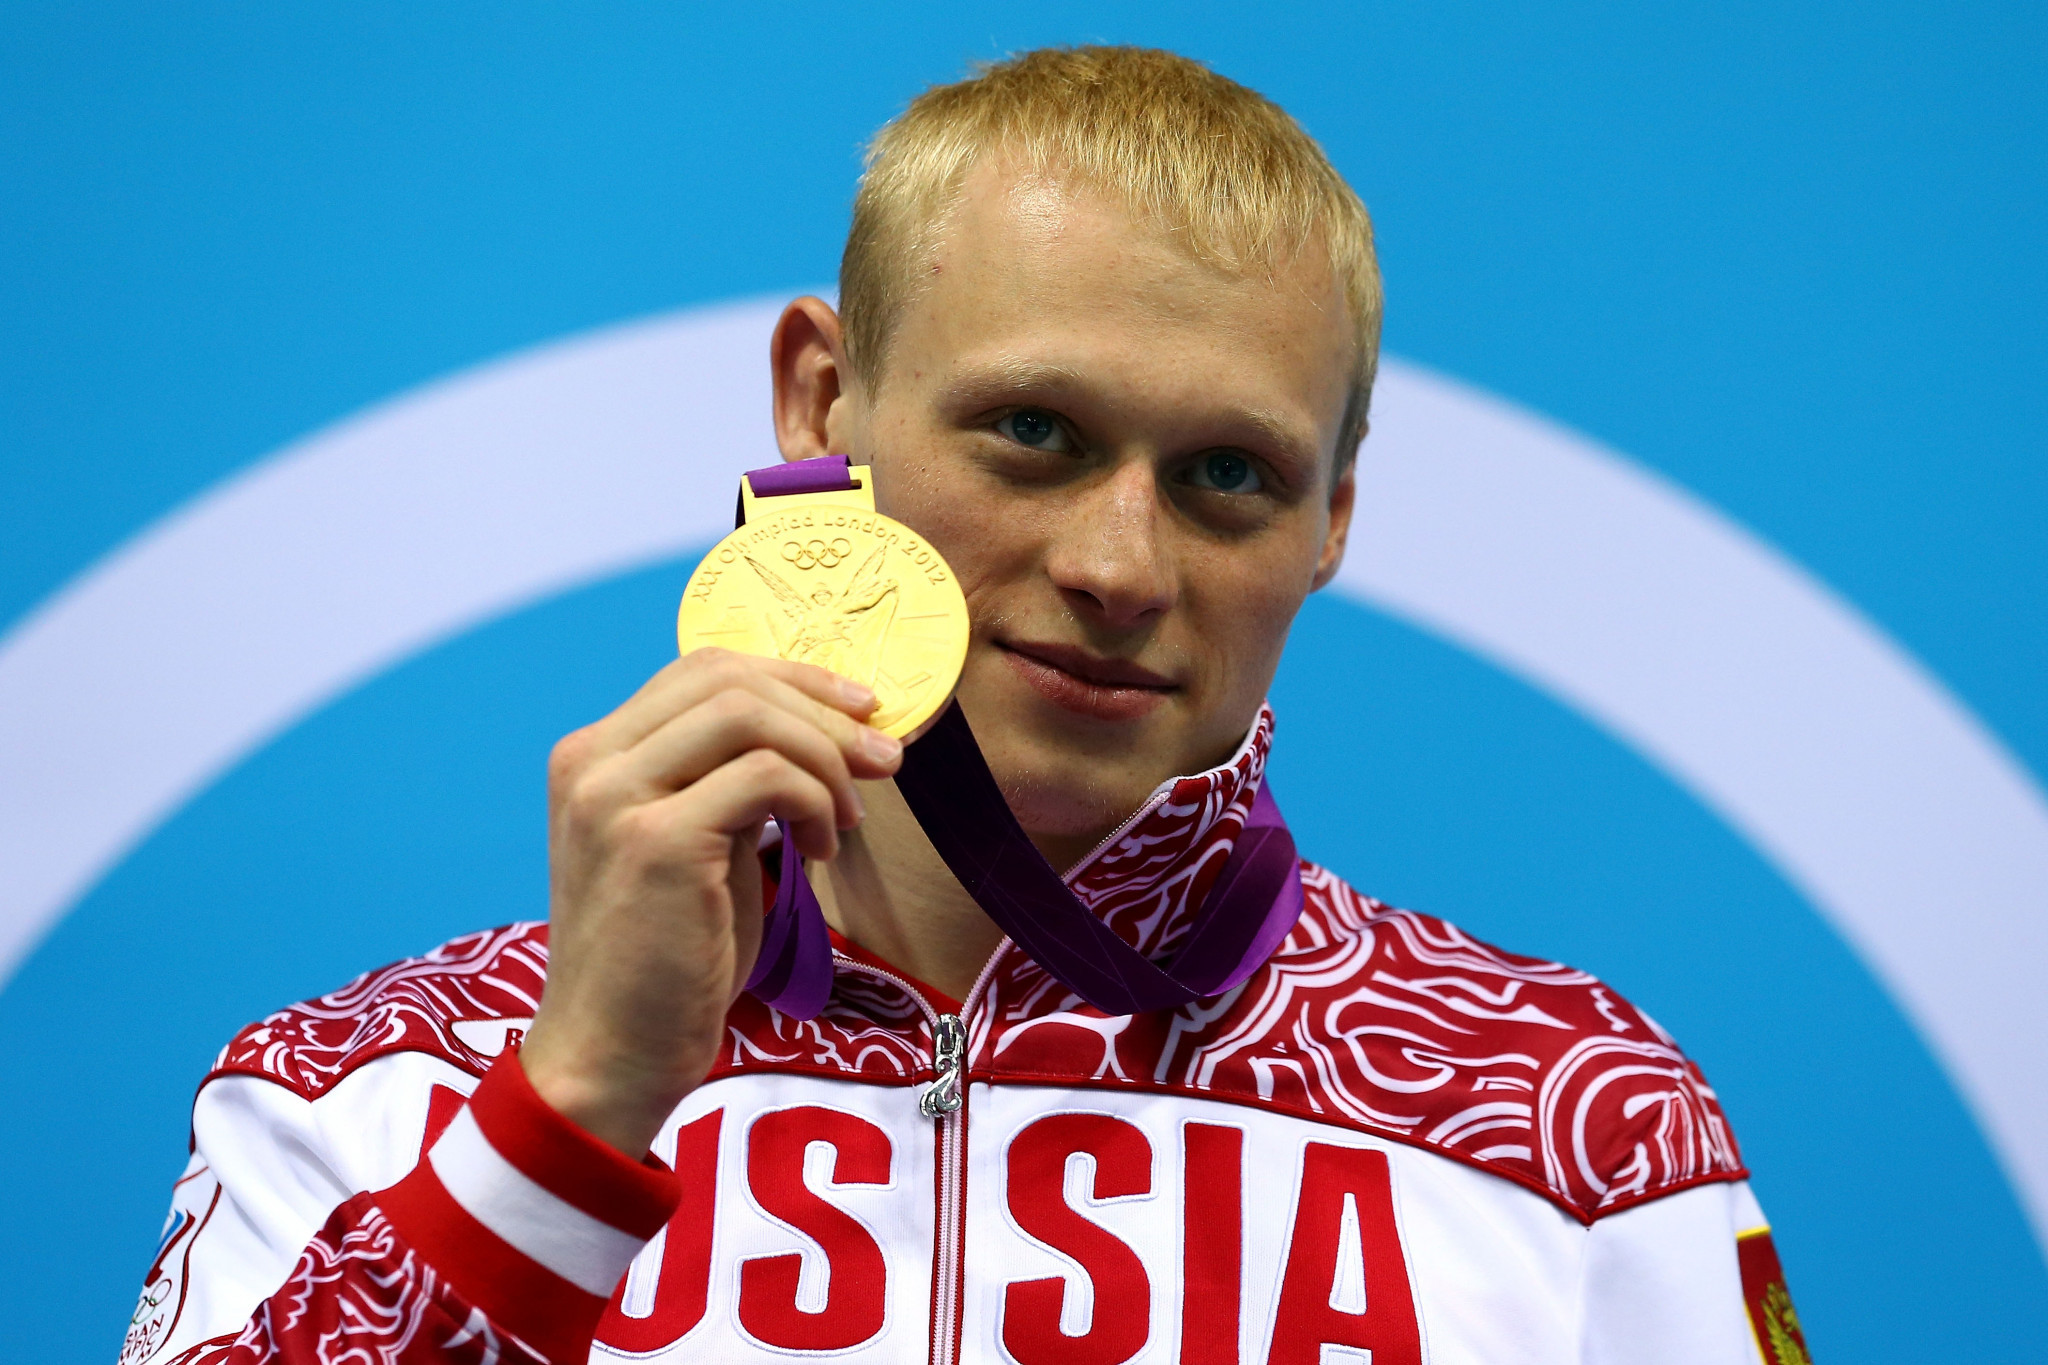 Zakharov with gold at London 2012 ©Getty Images